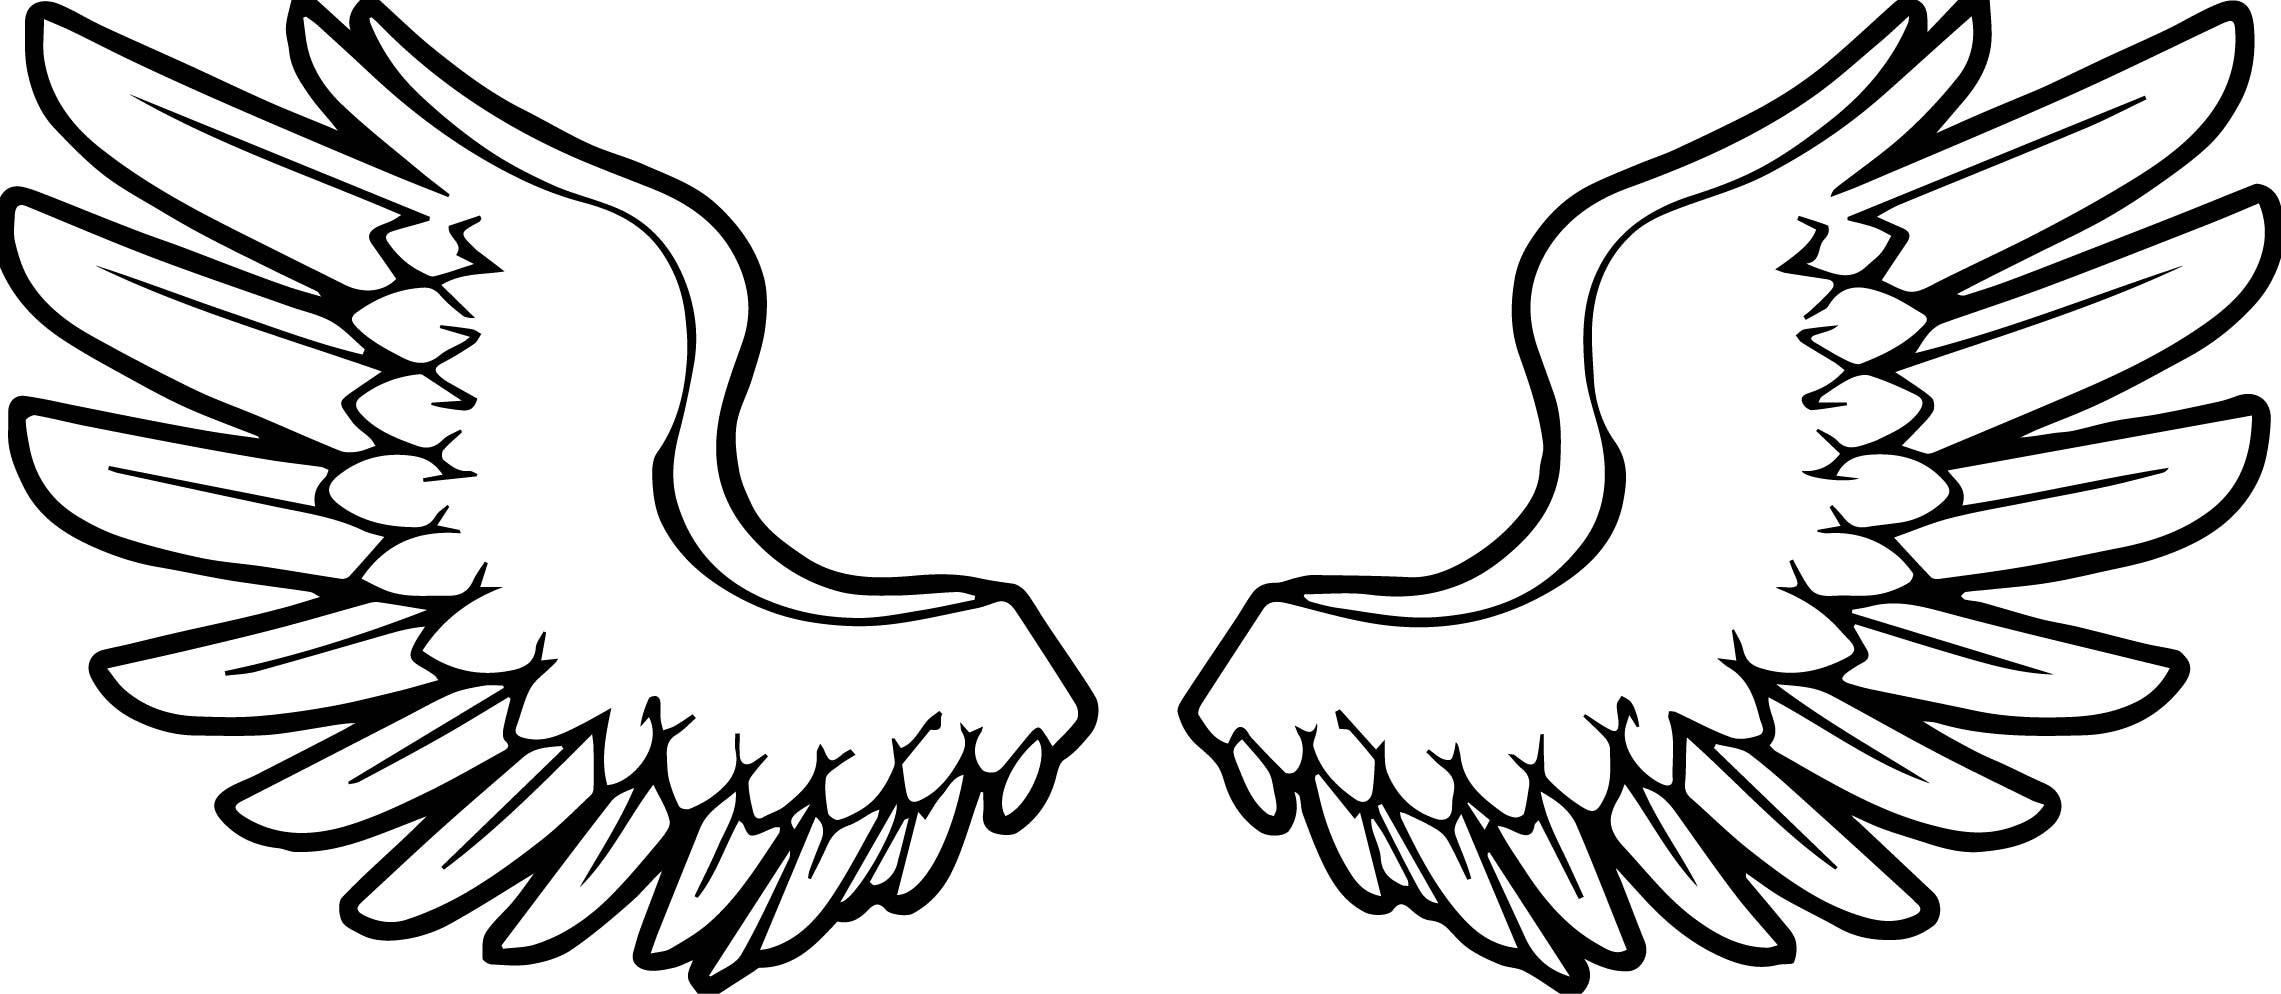 coloring pages of wings angel wings coloring page free printable coloring pages wings coloring of pages